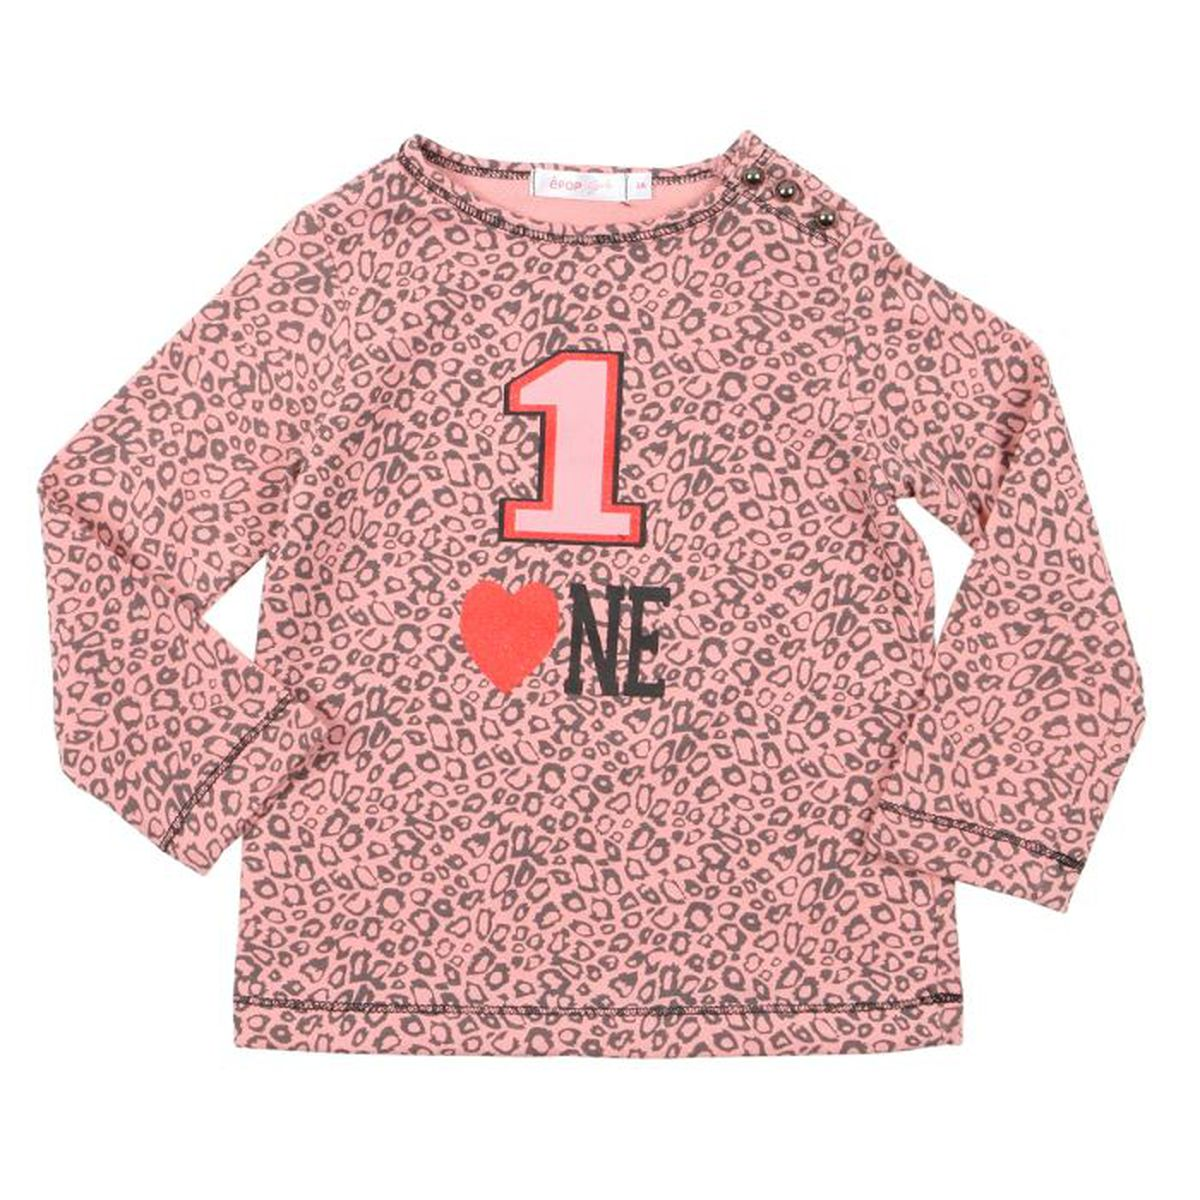 epop sweat enfant fille vieux rose achat vente sweatshirt cdiscount. Black Bedroom Furniture Sets. Home Design Ideas